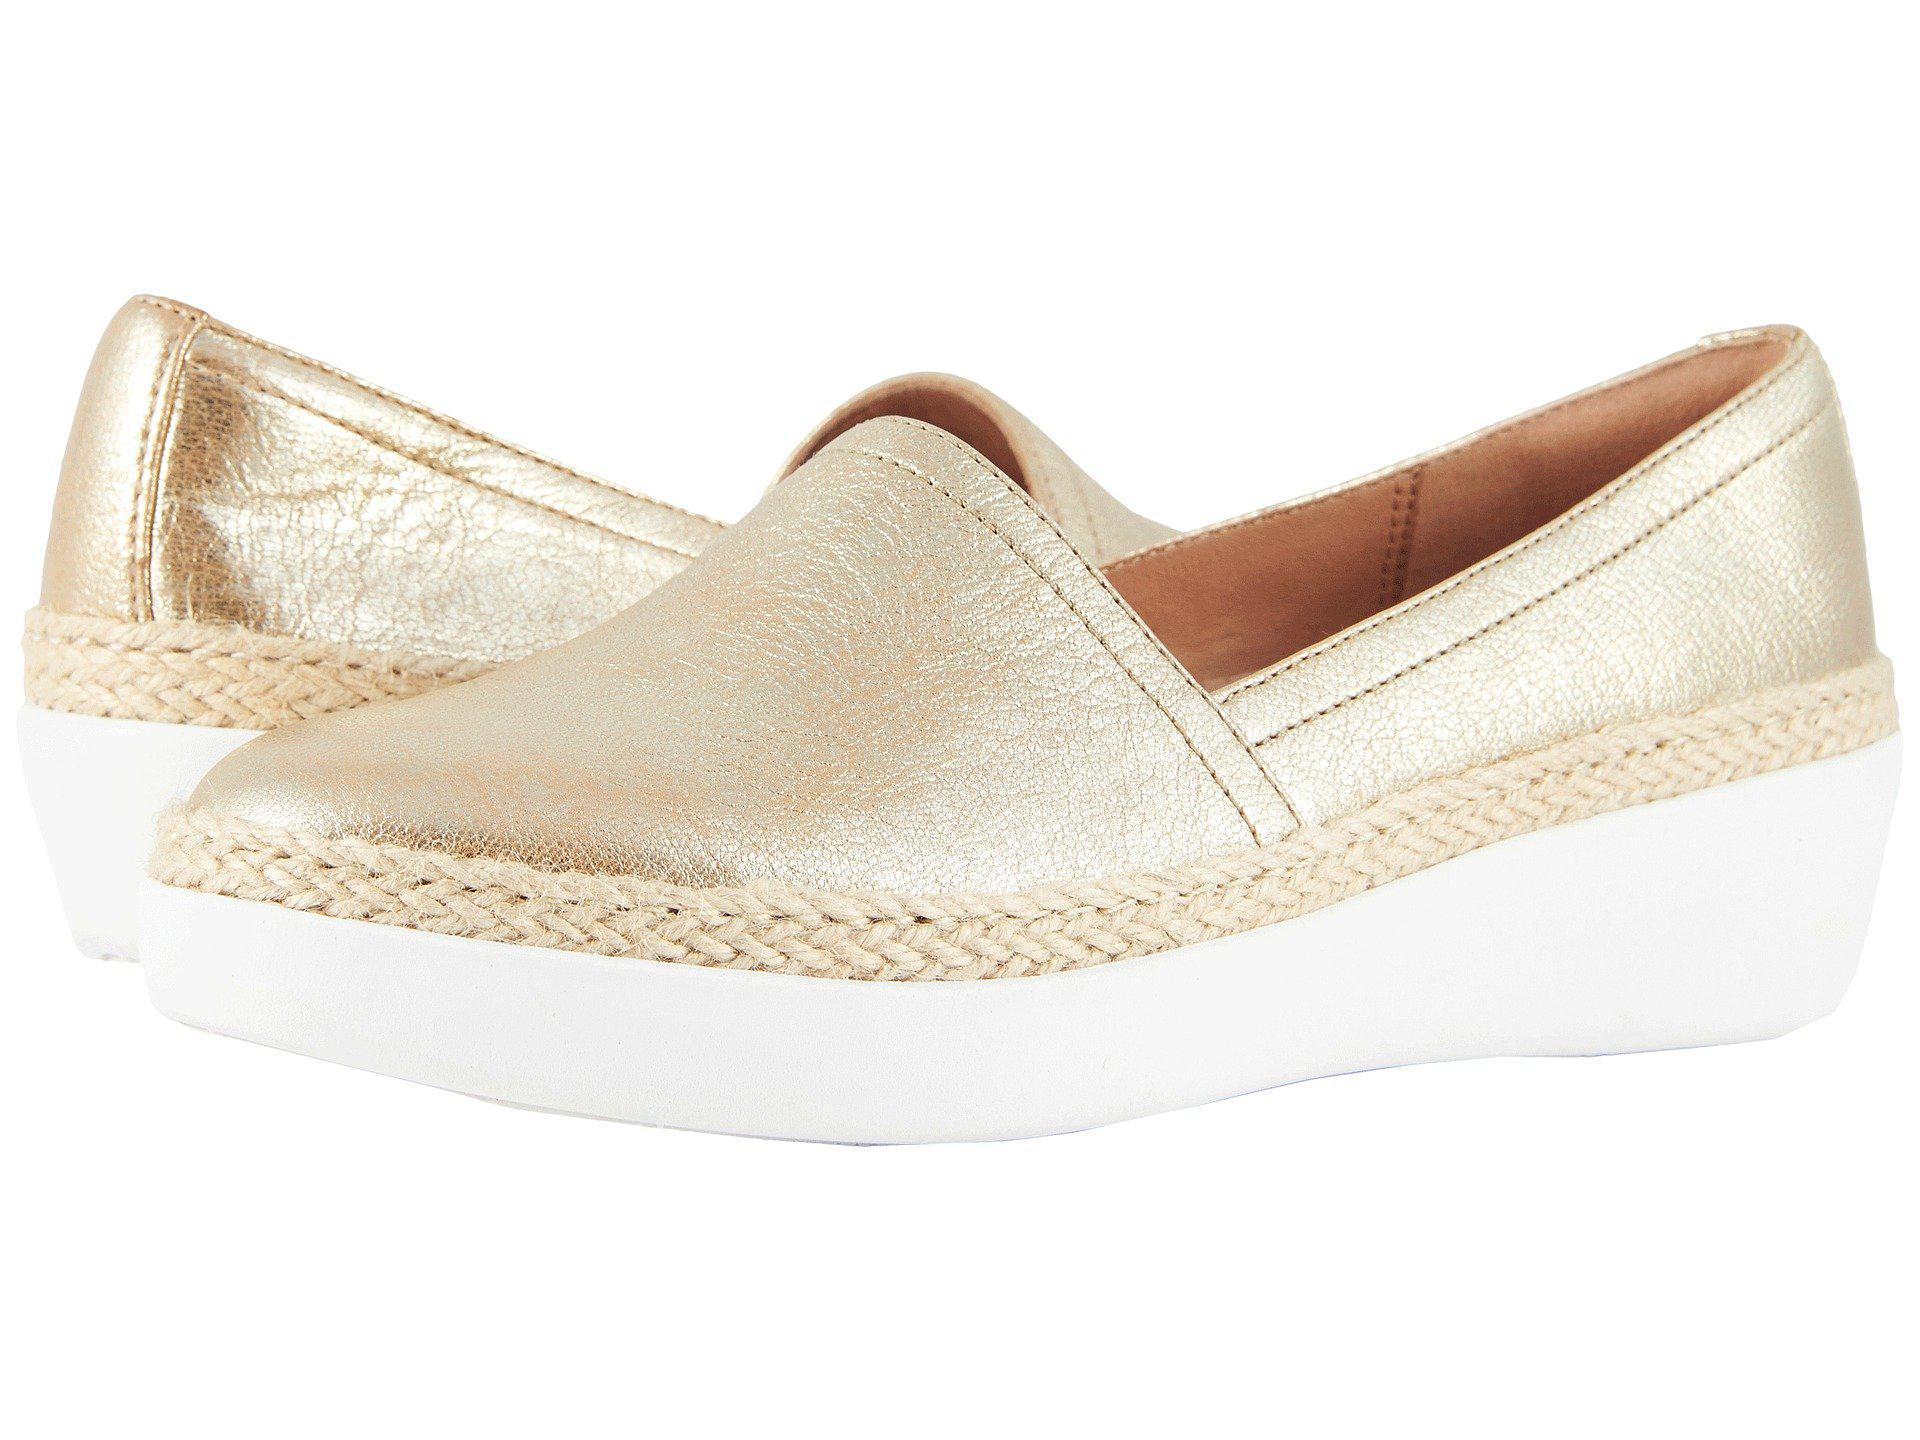 db34695bfdf3 Lyst - Fitflop Casa Loafers in Metallic - Save 43%